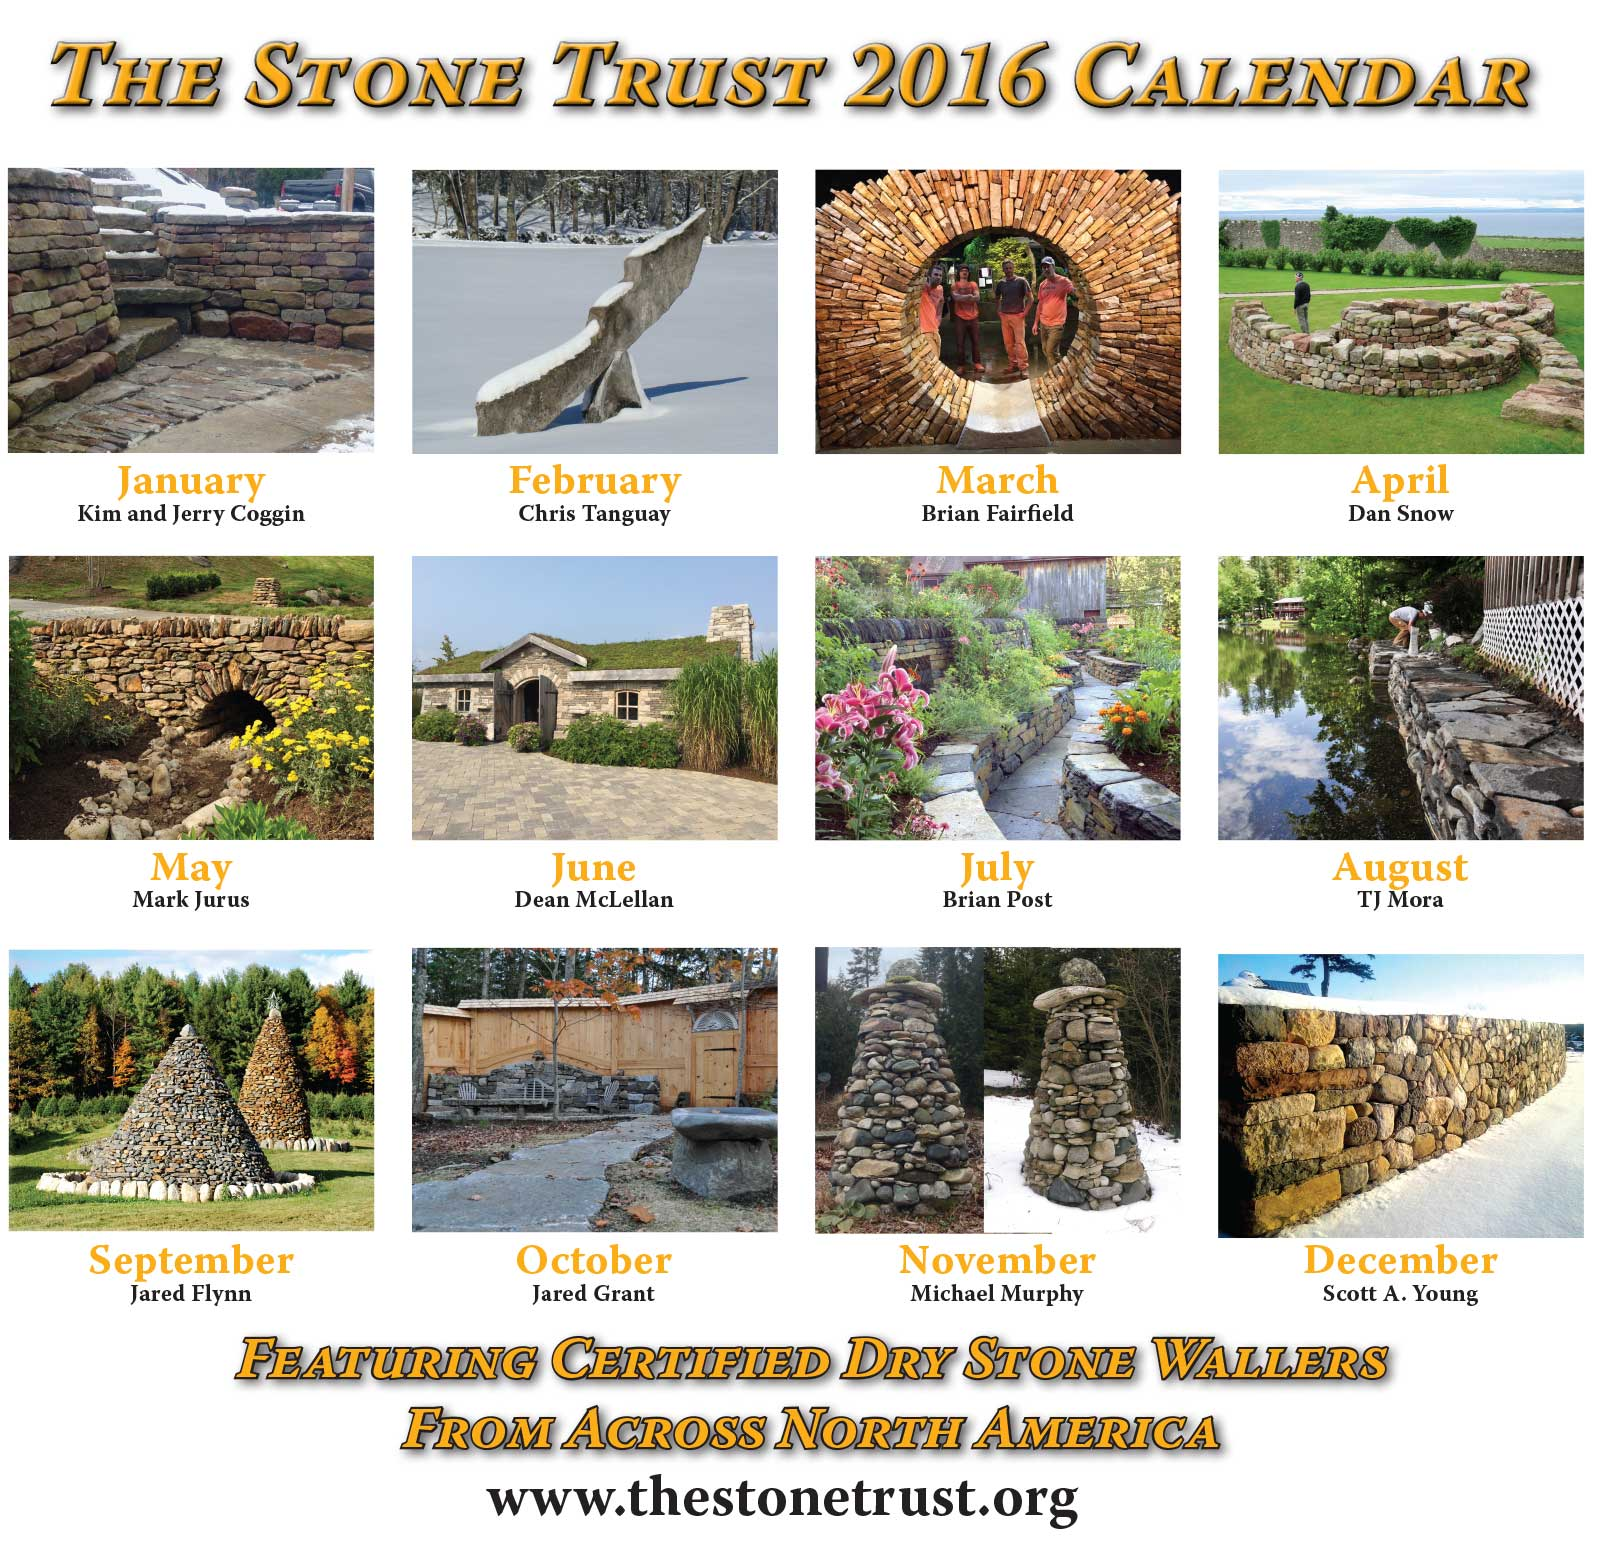 The Stone Trust Calendar - Back Cover